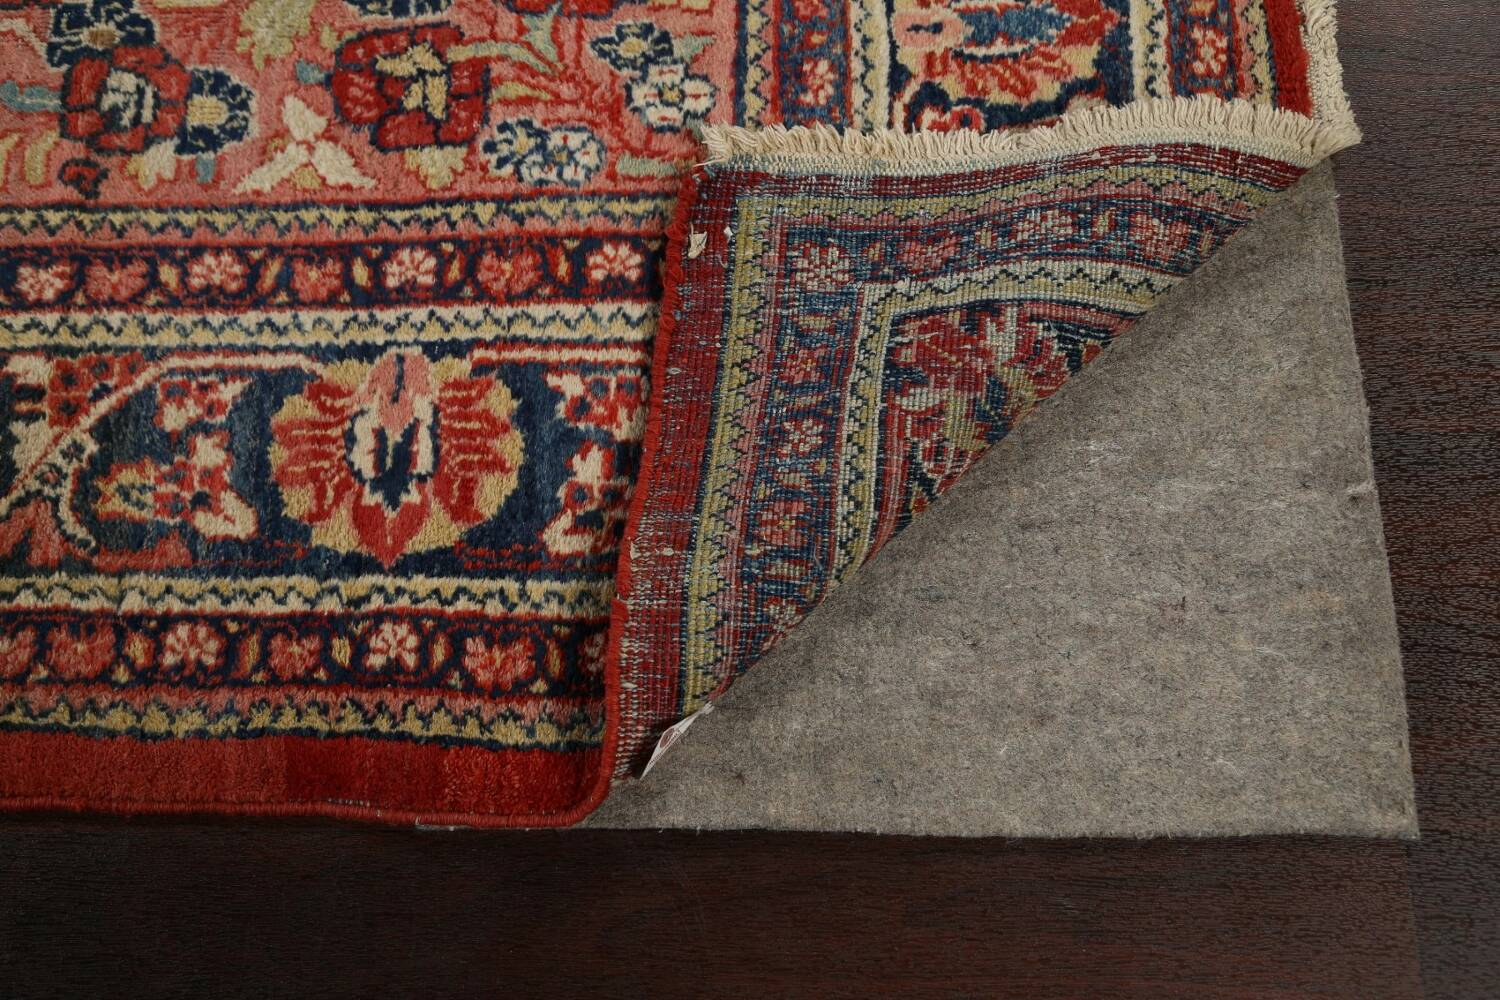 Antique Floral Mahal Persian Area Rug 8x11 image 7